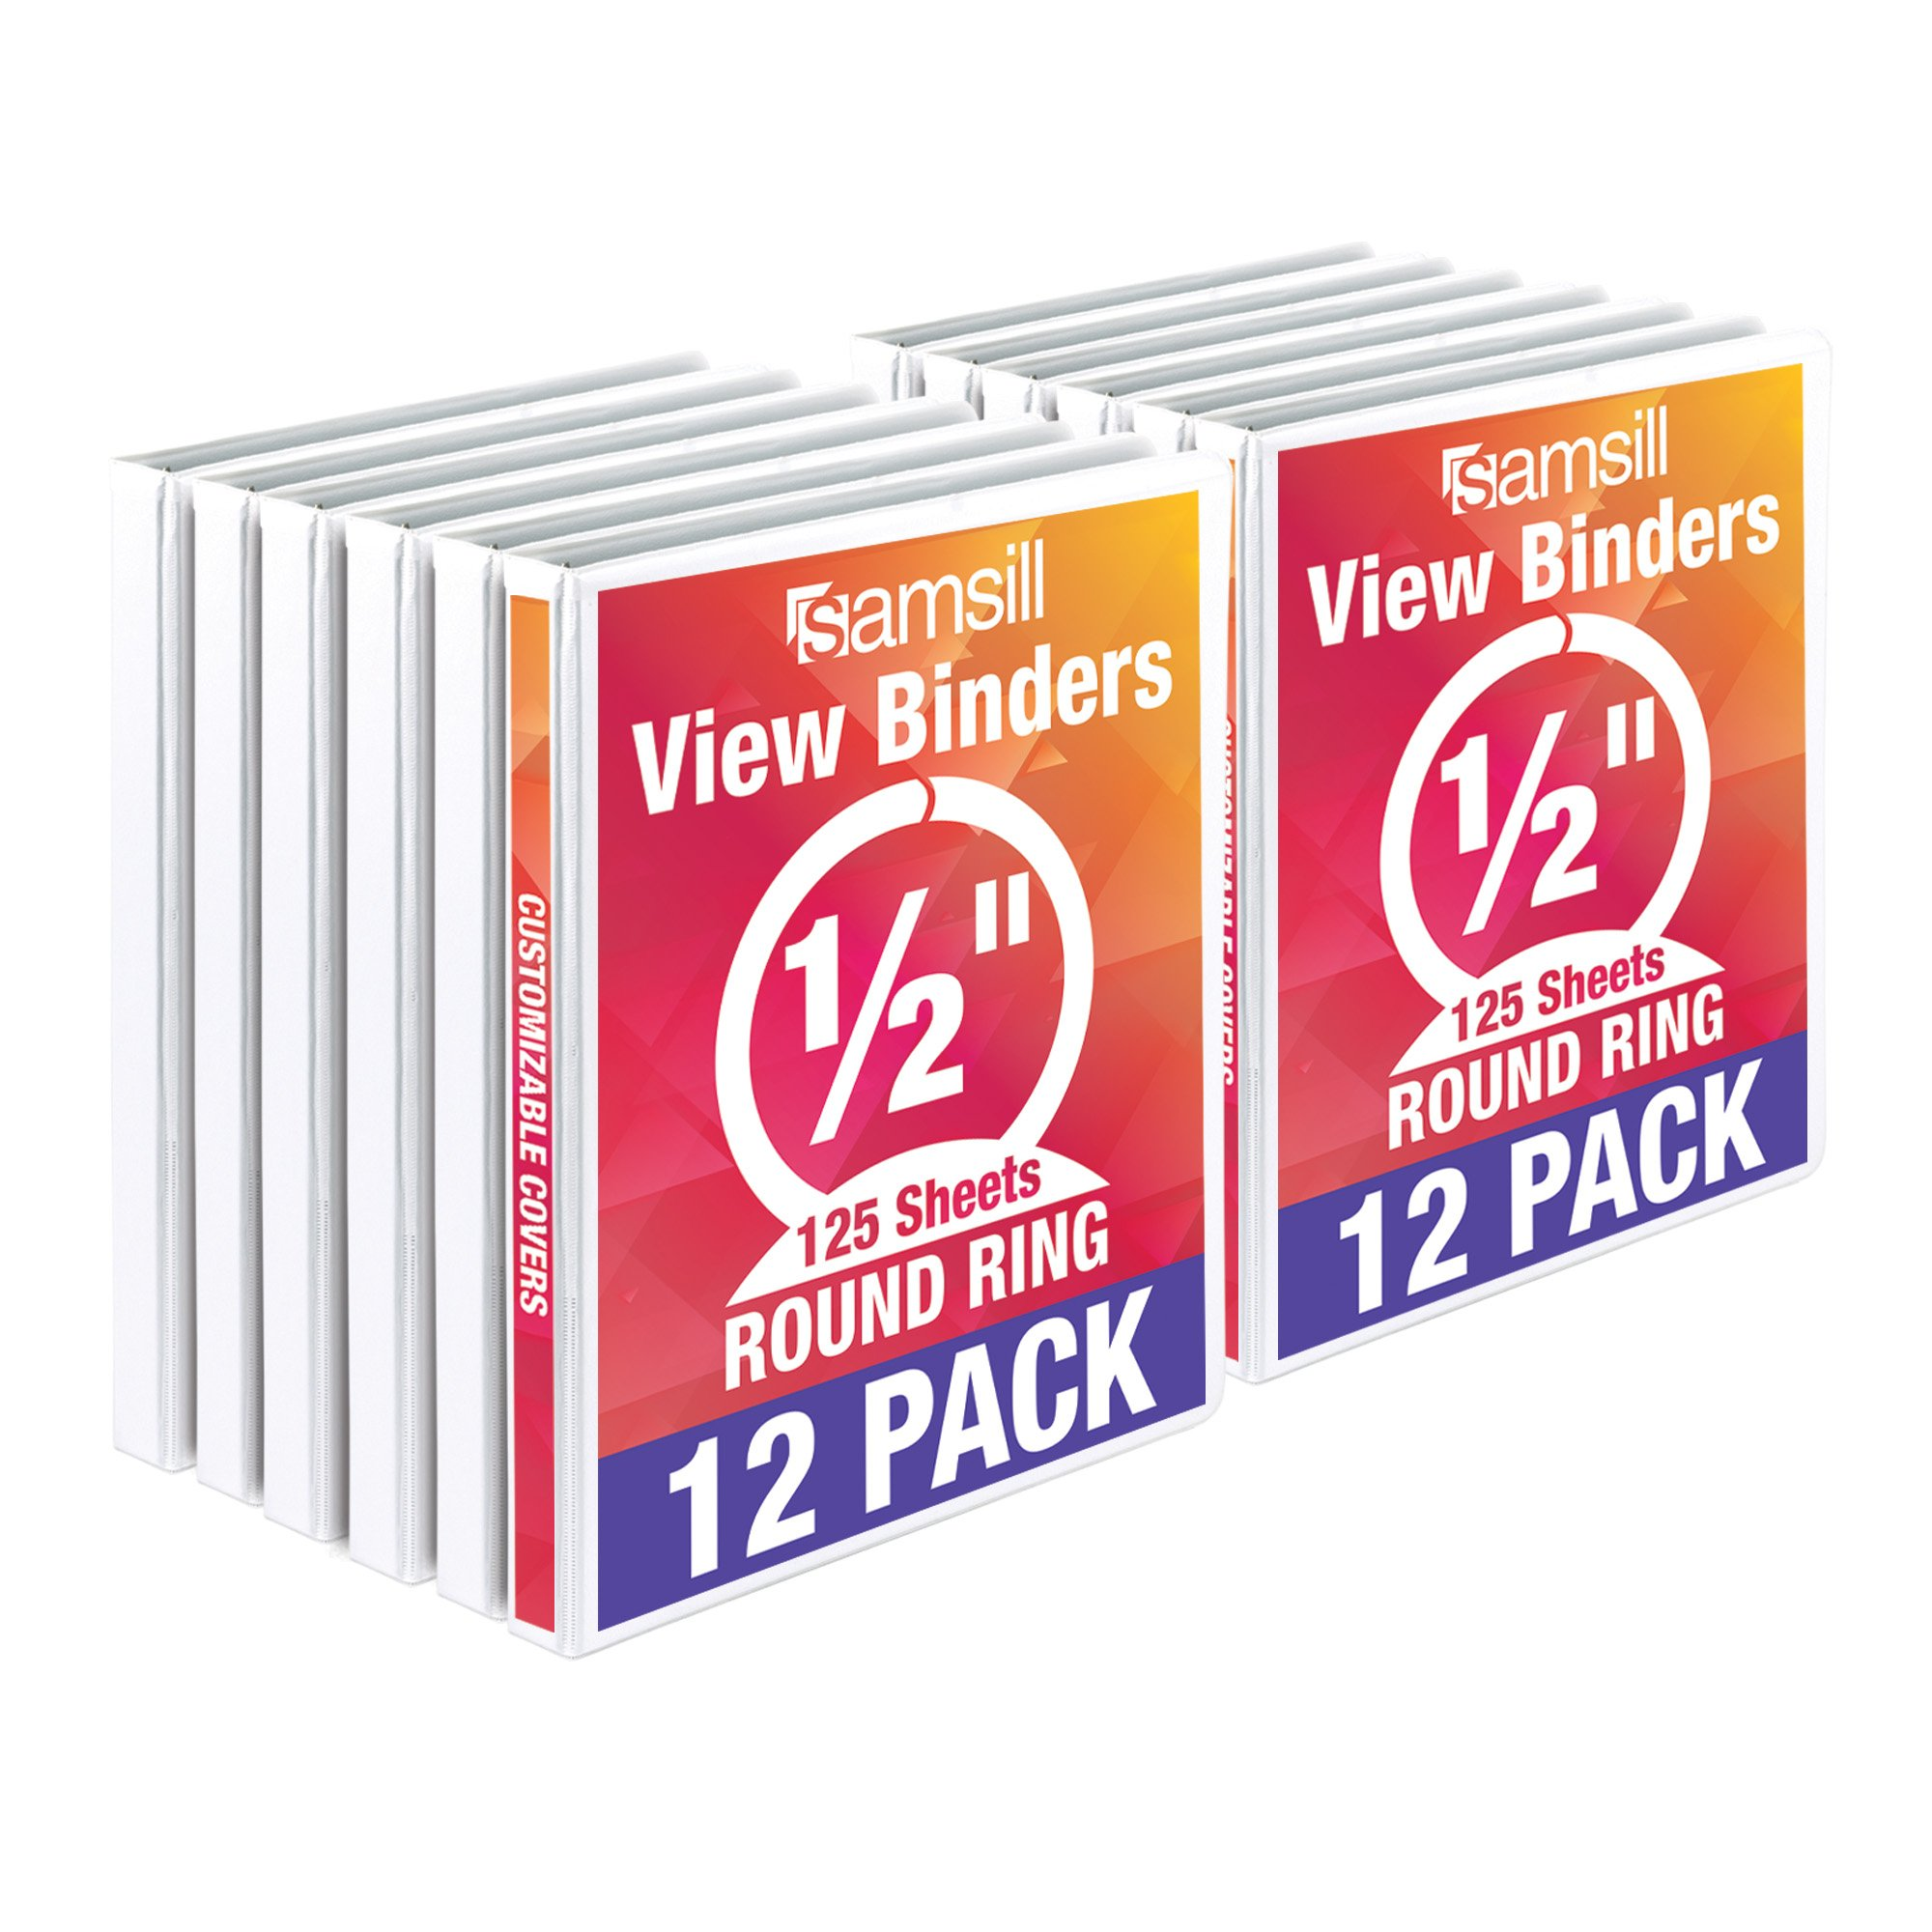 Samsill Economy 3 Ring View Binders.5 Inch Round Ring, Customizable Clear View Cover, White, Bulk Binders - 12 Pack